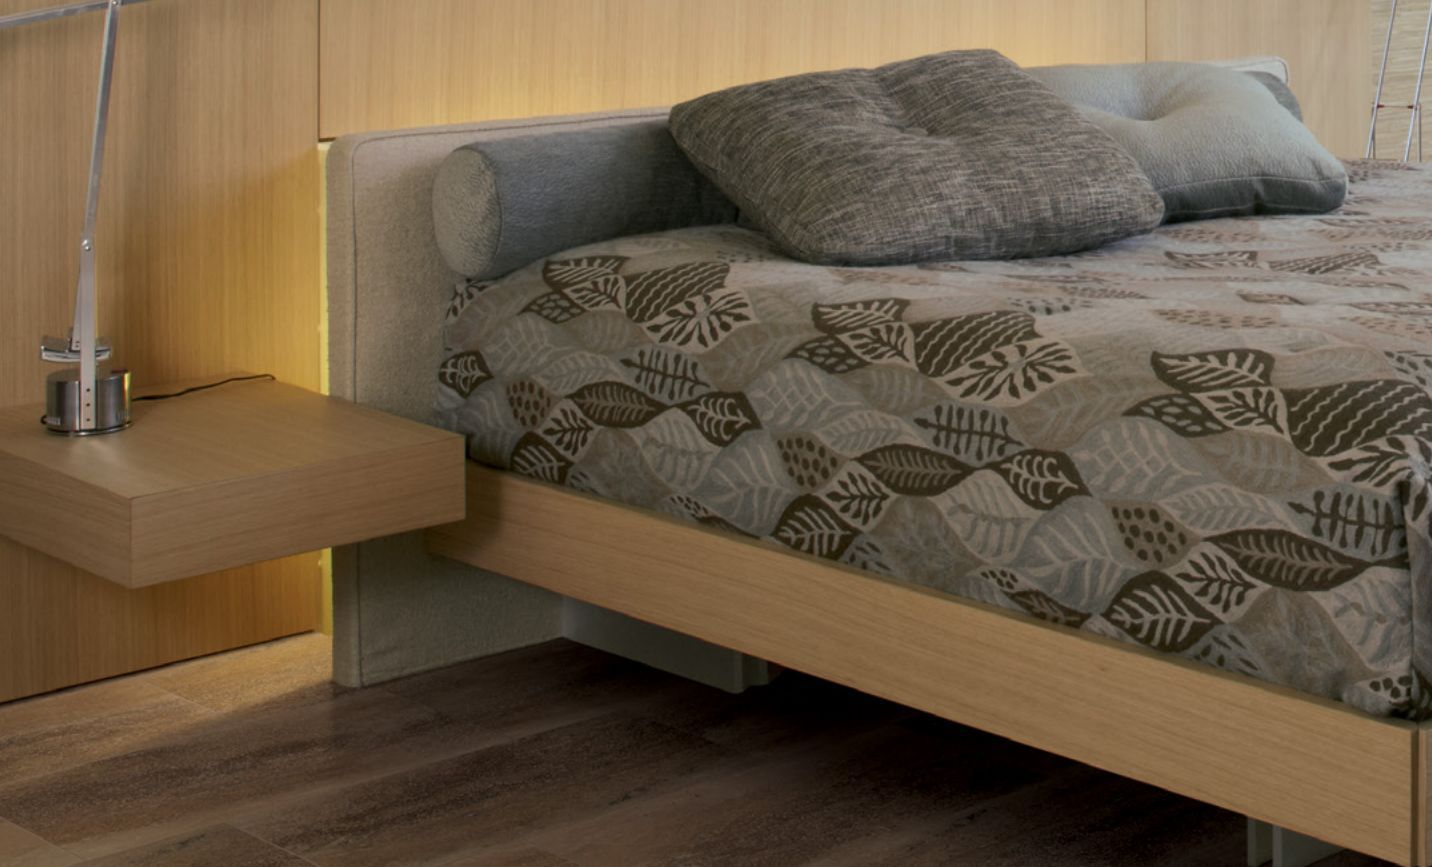 Wood floor and wood bed frame